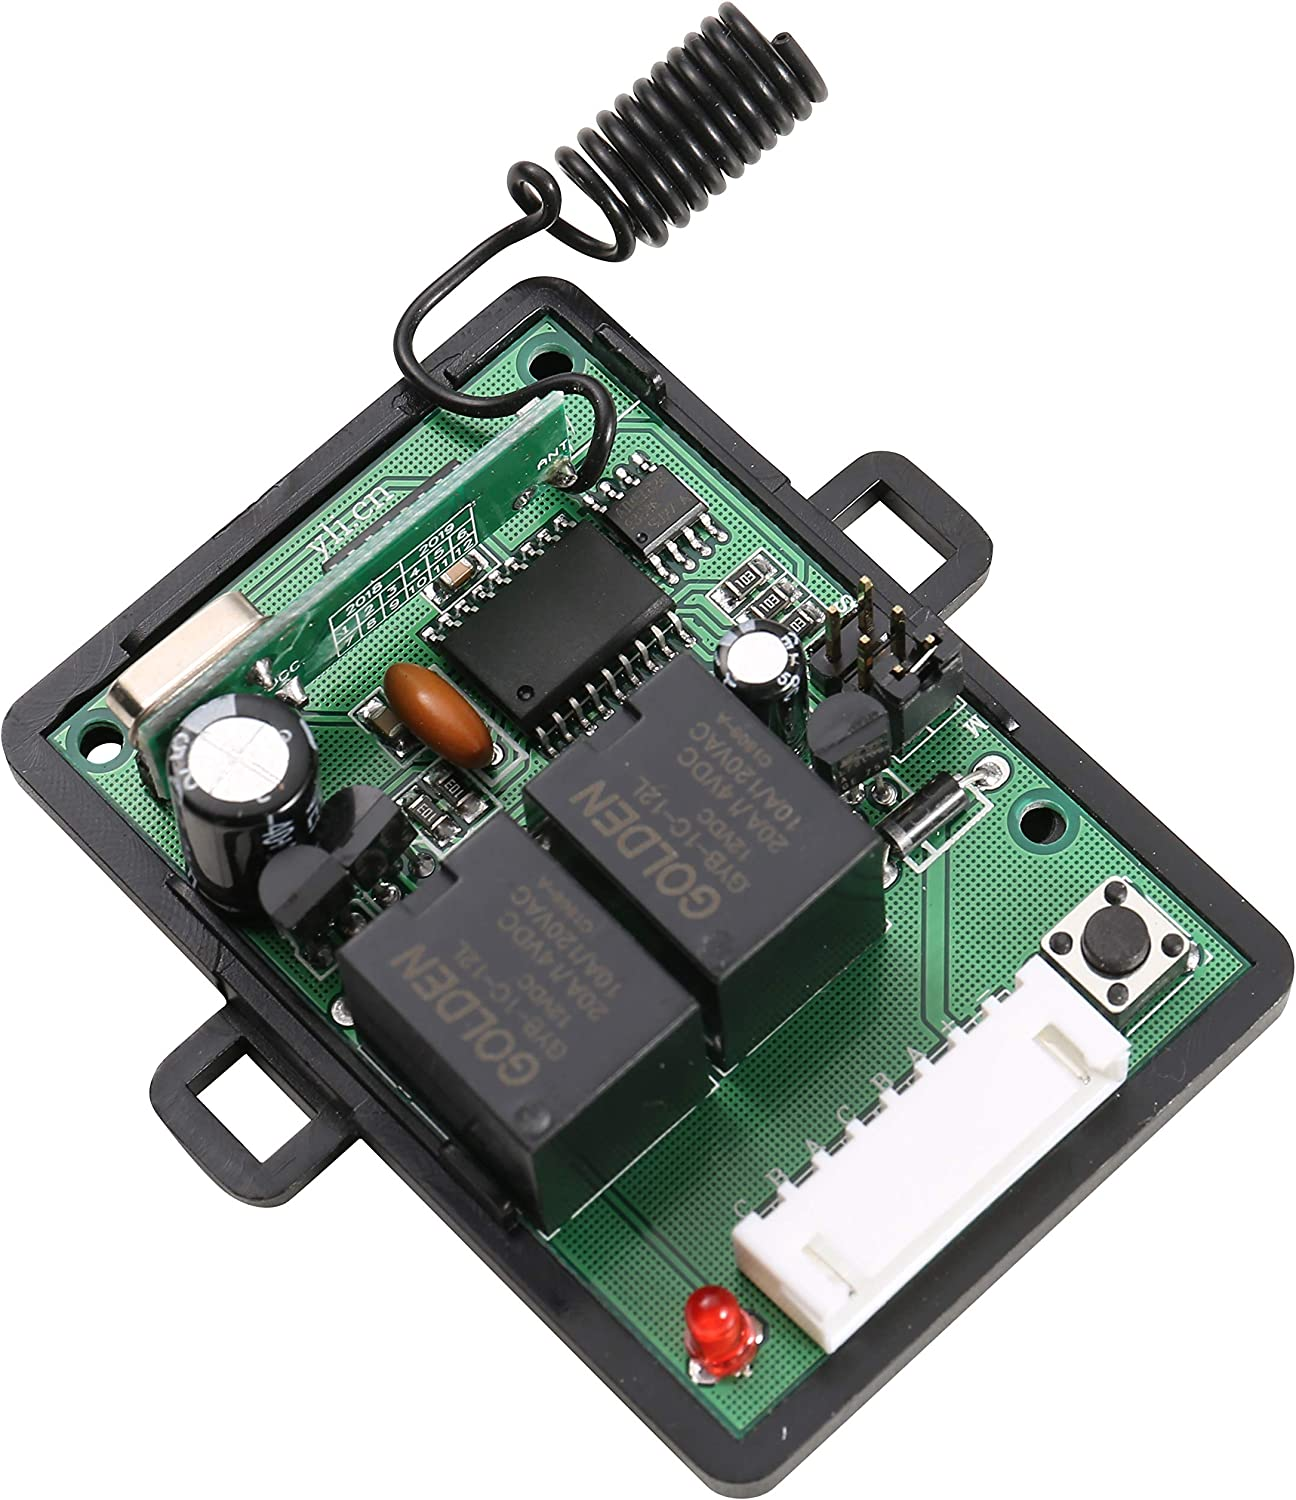 12vdc 433mhz Wireless Remote Control Switch 2-channel Electronics